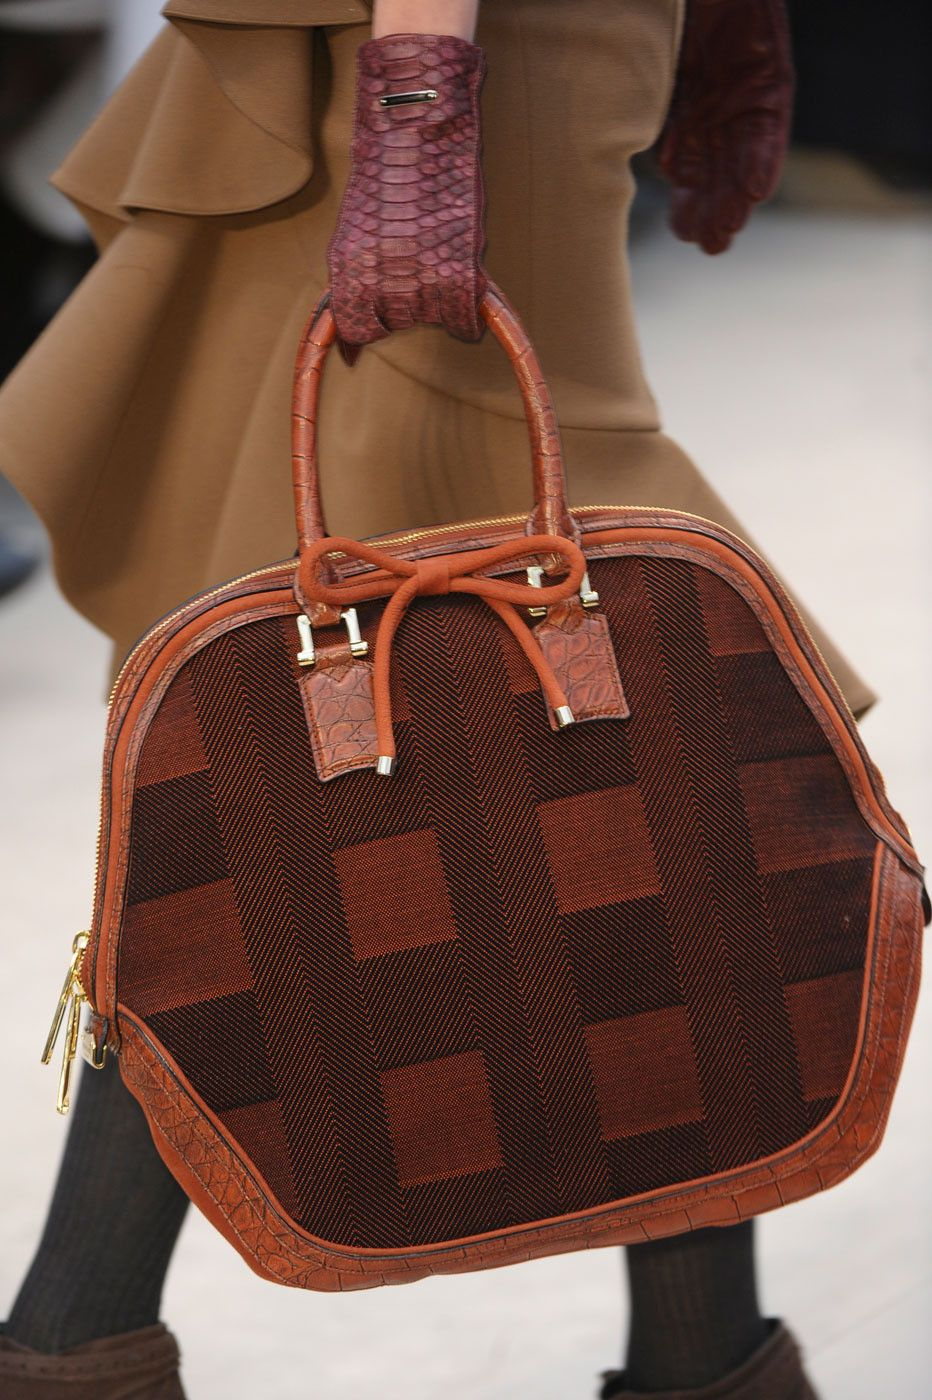 Discussion on this topic: Burberry Prorsum Holiday 2012 Accessories Collection, burberry-prorsum-holiday-2012-accessories-collection/